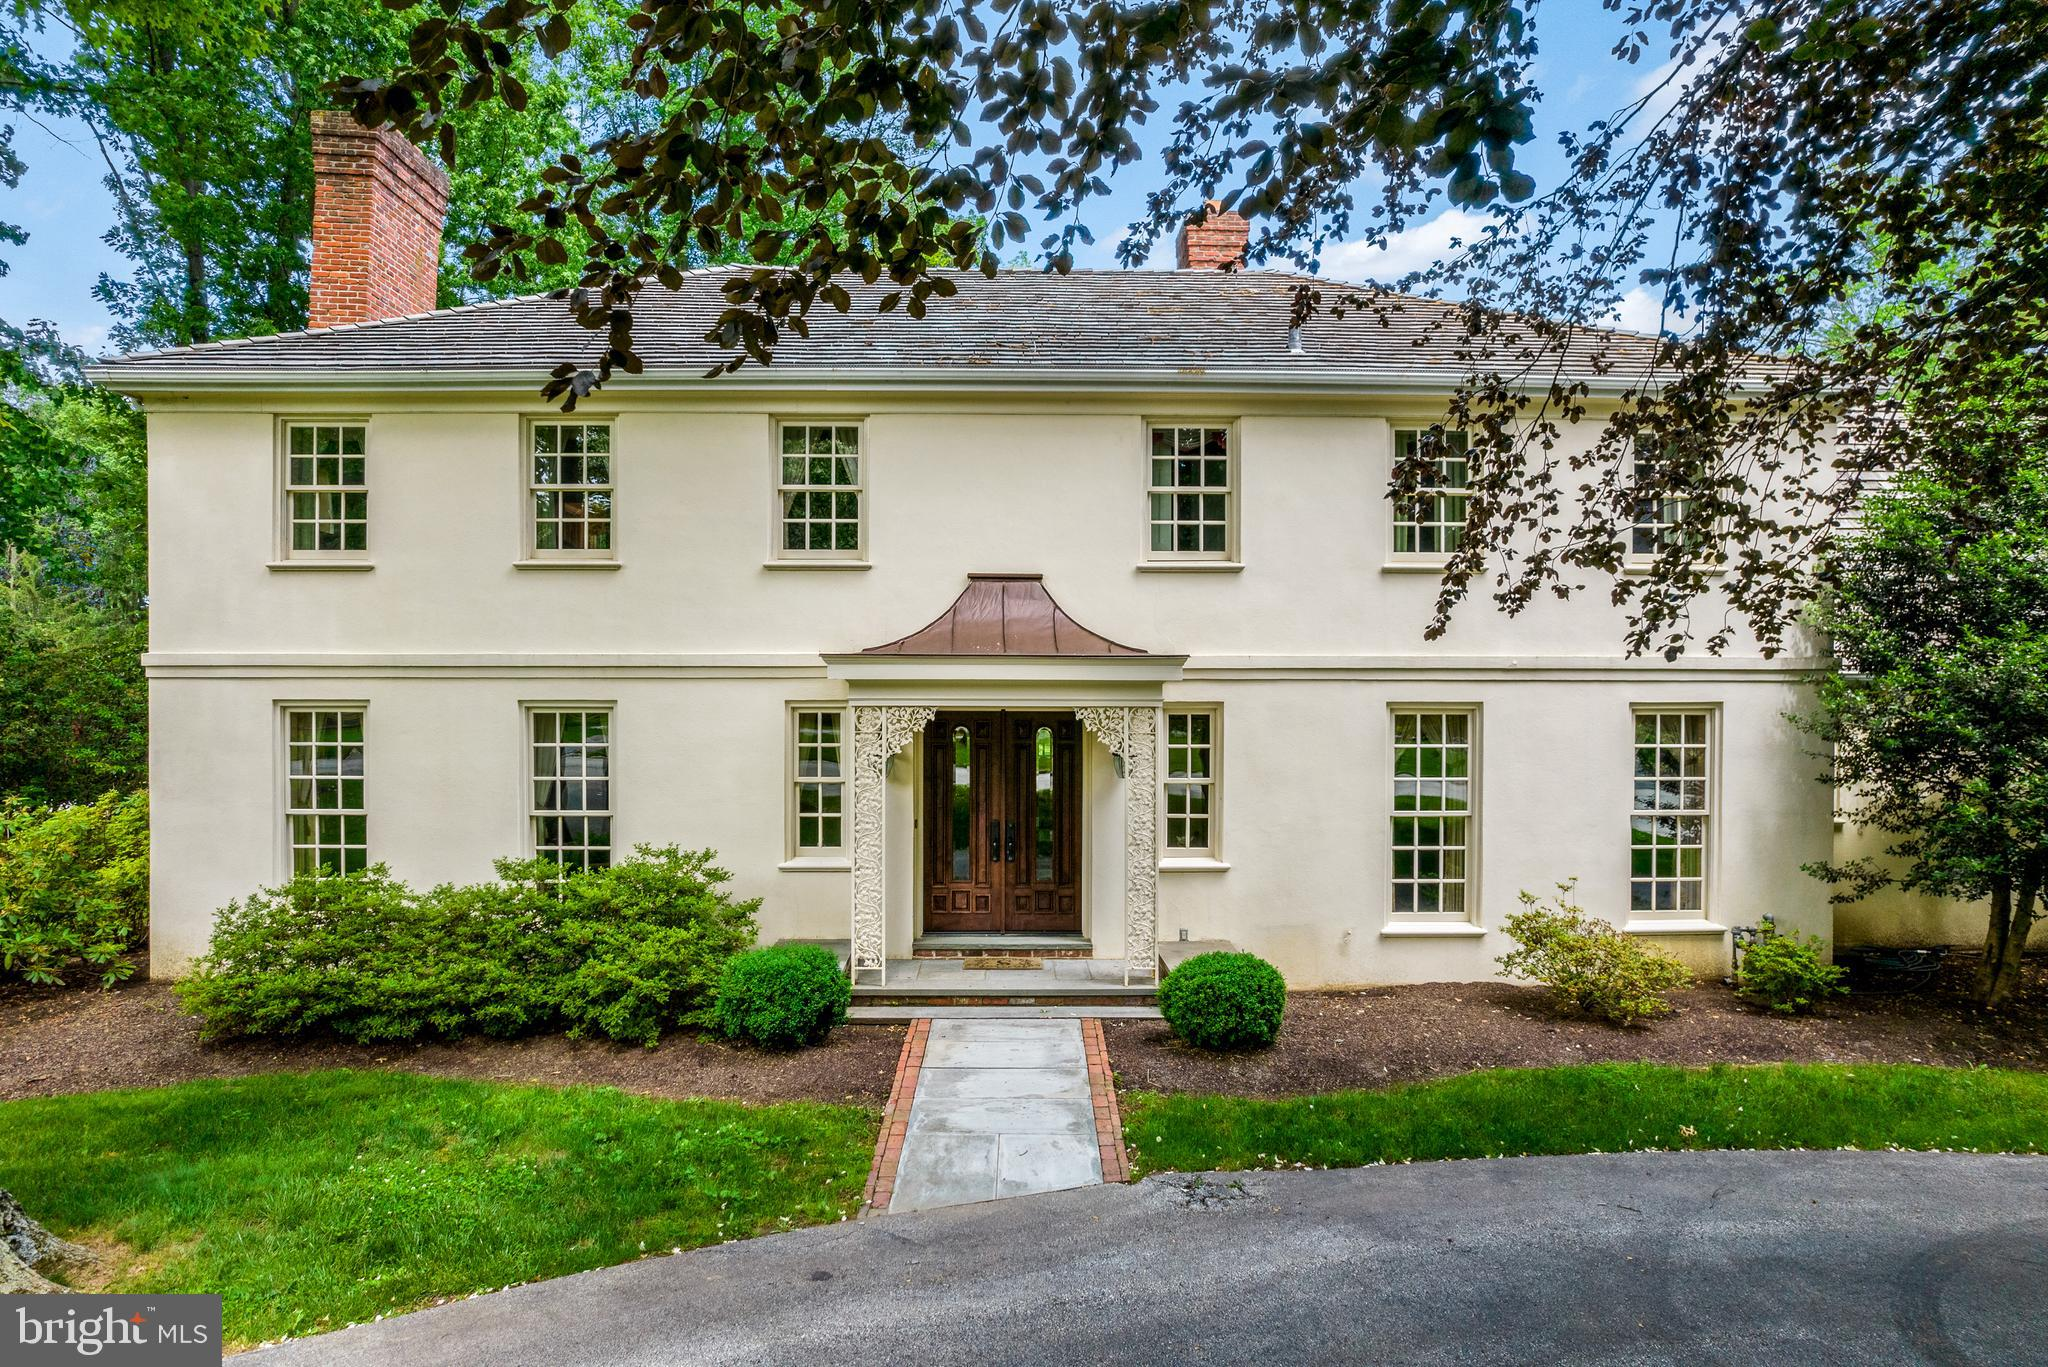 This lovely 4 bedroom 4 ½ bath Main Line classic Colonial is located on the premier north side of Bryn Mawr in the renowned Lower Merion school district, just minutes from Gladwyne, Bryn Mawr, Villanova and Philadelphia Country Club.  Major corridors to King of Prussia and center city Philadelphia are also conveniently accessible from this desirable location!    Situated on a magnificent corner lot along a secluded cul-de-sac, this property offers the ultimate in privacy!   The home has a newer cedar-shake roof and has been meticulously maintained.  It offers beautifully landscaped grounds with many species of mature trees, flowering shrubs and perennials that surround custom designed, flagstone and brick patios.  The large back yard is bordered by an expansive woodland area.  Enter the home through double mahogany doors into a foyer with a winding staircase, powder room and walk-in coat closet. To the left is a formal living room with wood-burning fireplace.  On the right, French doors lead to a formal dining room.  Beautiful hardwood floors extend throughout the main level.  The large kitchen offers granite countertops, a center island, imported tile floors and an eat-in dining area, with direct access to the back yard and formal dining room.  Also off the kitchen are the laundry room with built-in cabinets, two-car garage with built-in storage shelves and a second stairway leading to the upper level.   The main level also consists of a sitting room with a gas fireplace surrounded by beautiful millwork and built-ins, which opens to a great room with expansive views on all three sides.  The great room also boasts intricate millwork, built-in shelving, and a wet bar with a copper sink.  French doors lead to the flagstone and brick patios, perfect for entertaining!  The second level consists of a master bedroom with a fireplace, walk-in closets, and En-suite bath with a jetted tub, vanity, double sink, walk-in shower and heat lamps.  The upstairs landing includes a l